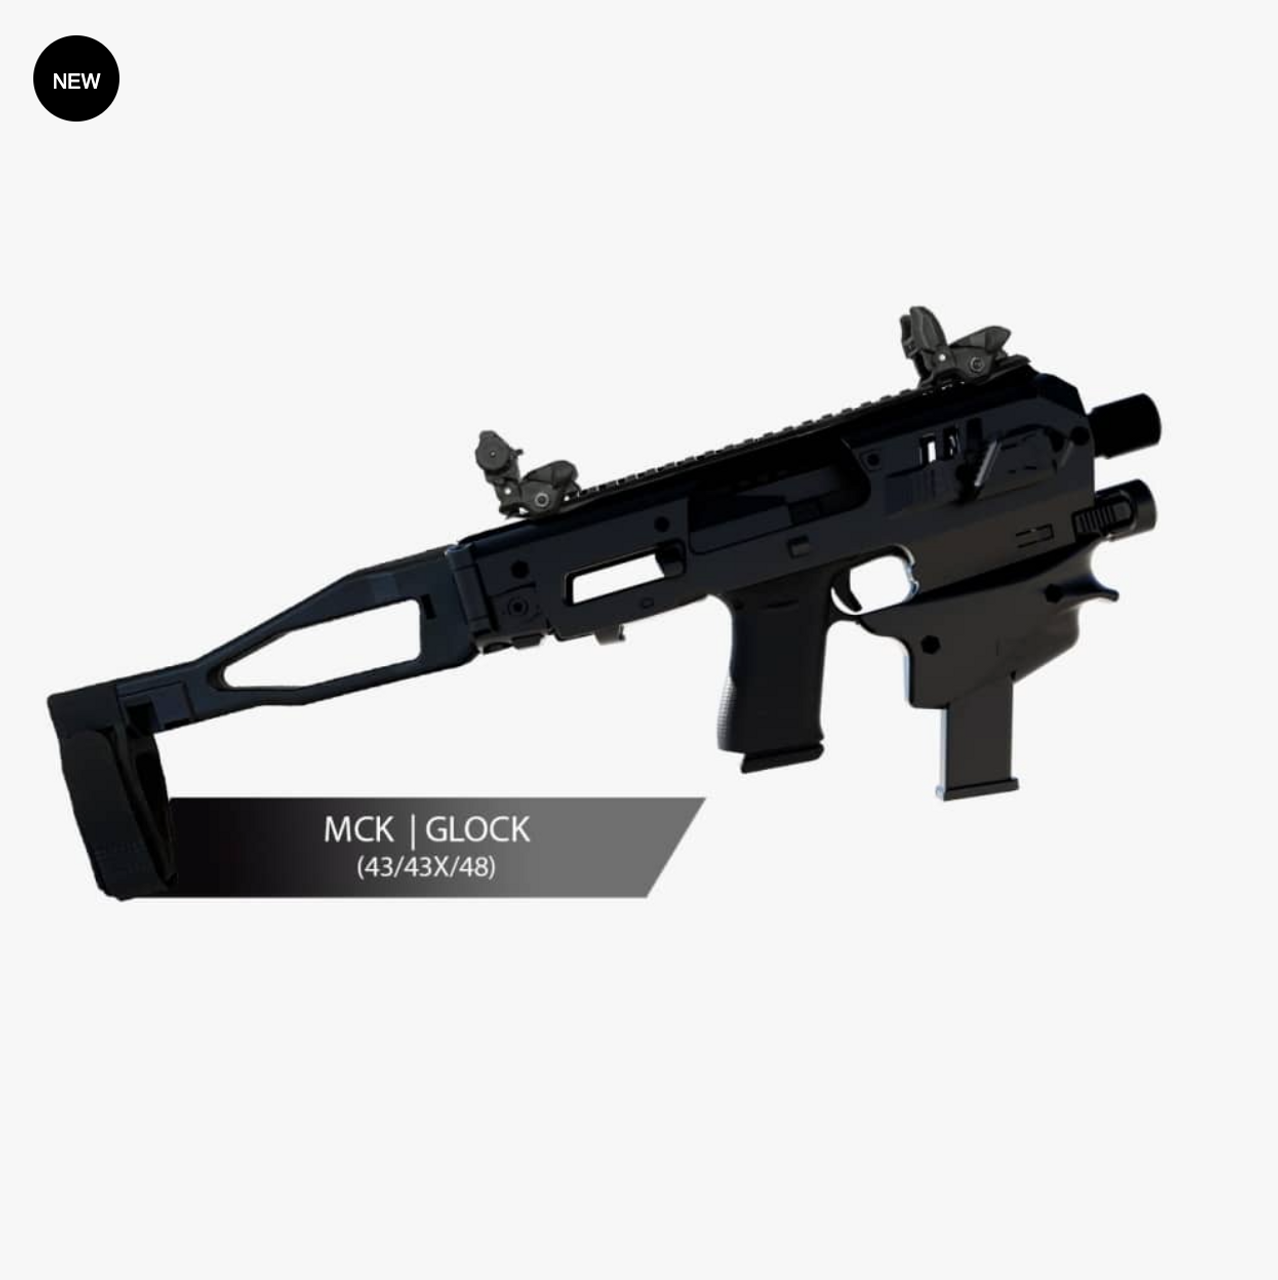 *NEW* MCK43/48GEN2 | MICRO CONVERSION KIT GLOCK 43/43X/48